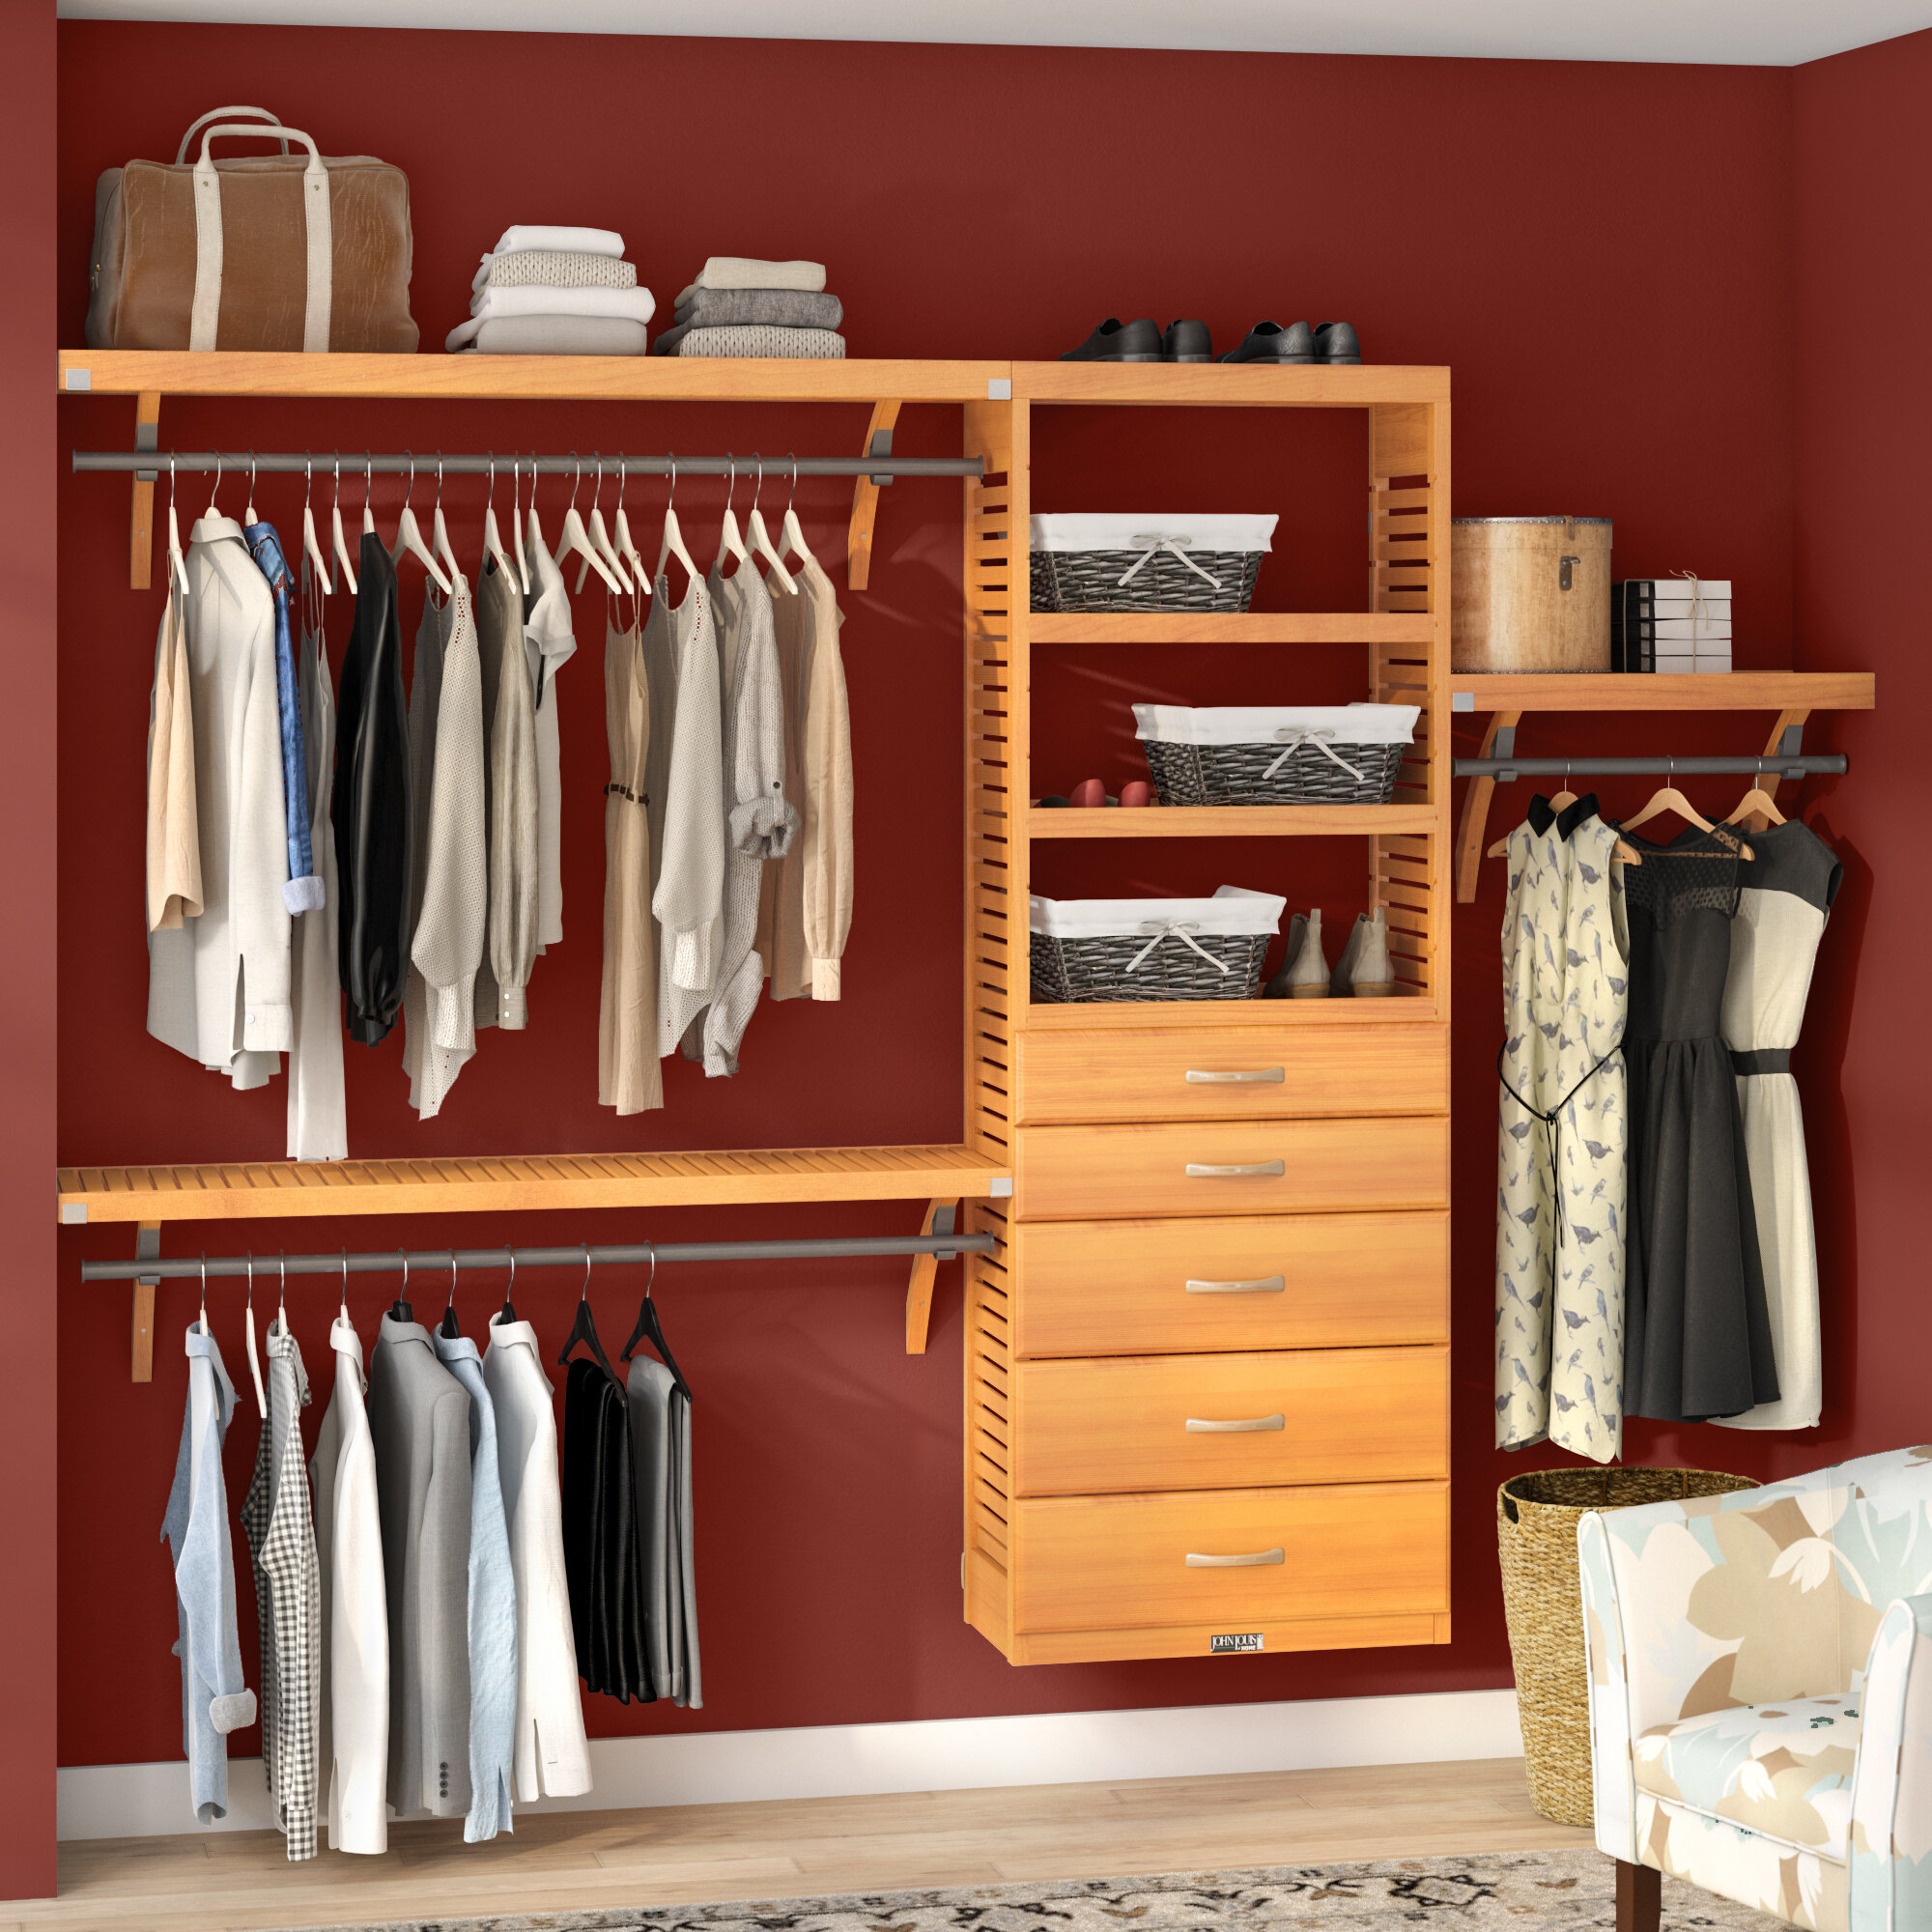 John Louis Home 16 W Deep Solid Wood 5 Drawers Deluxe Organizer